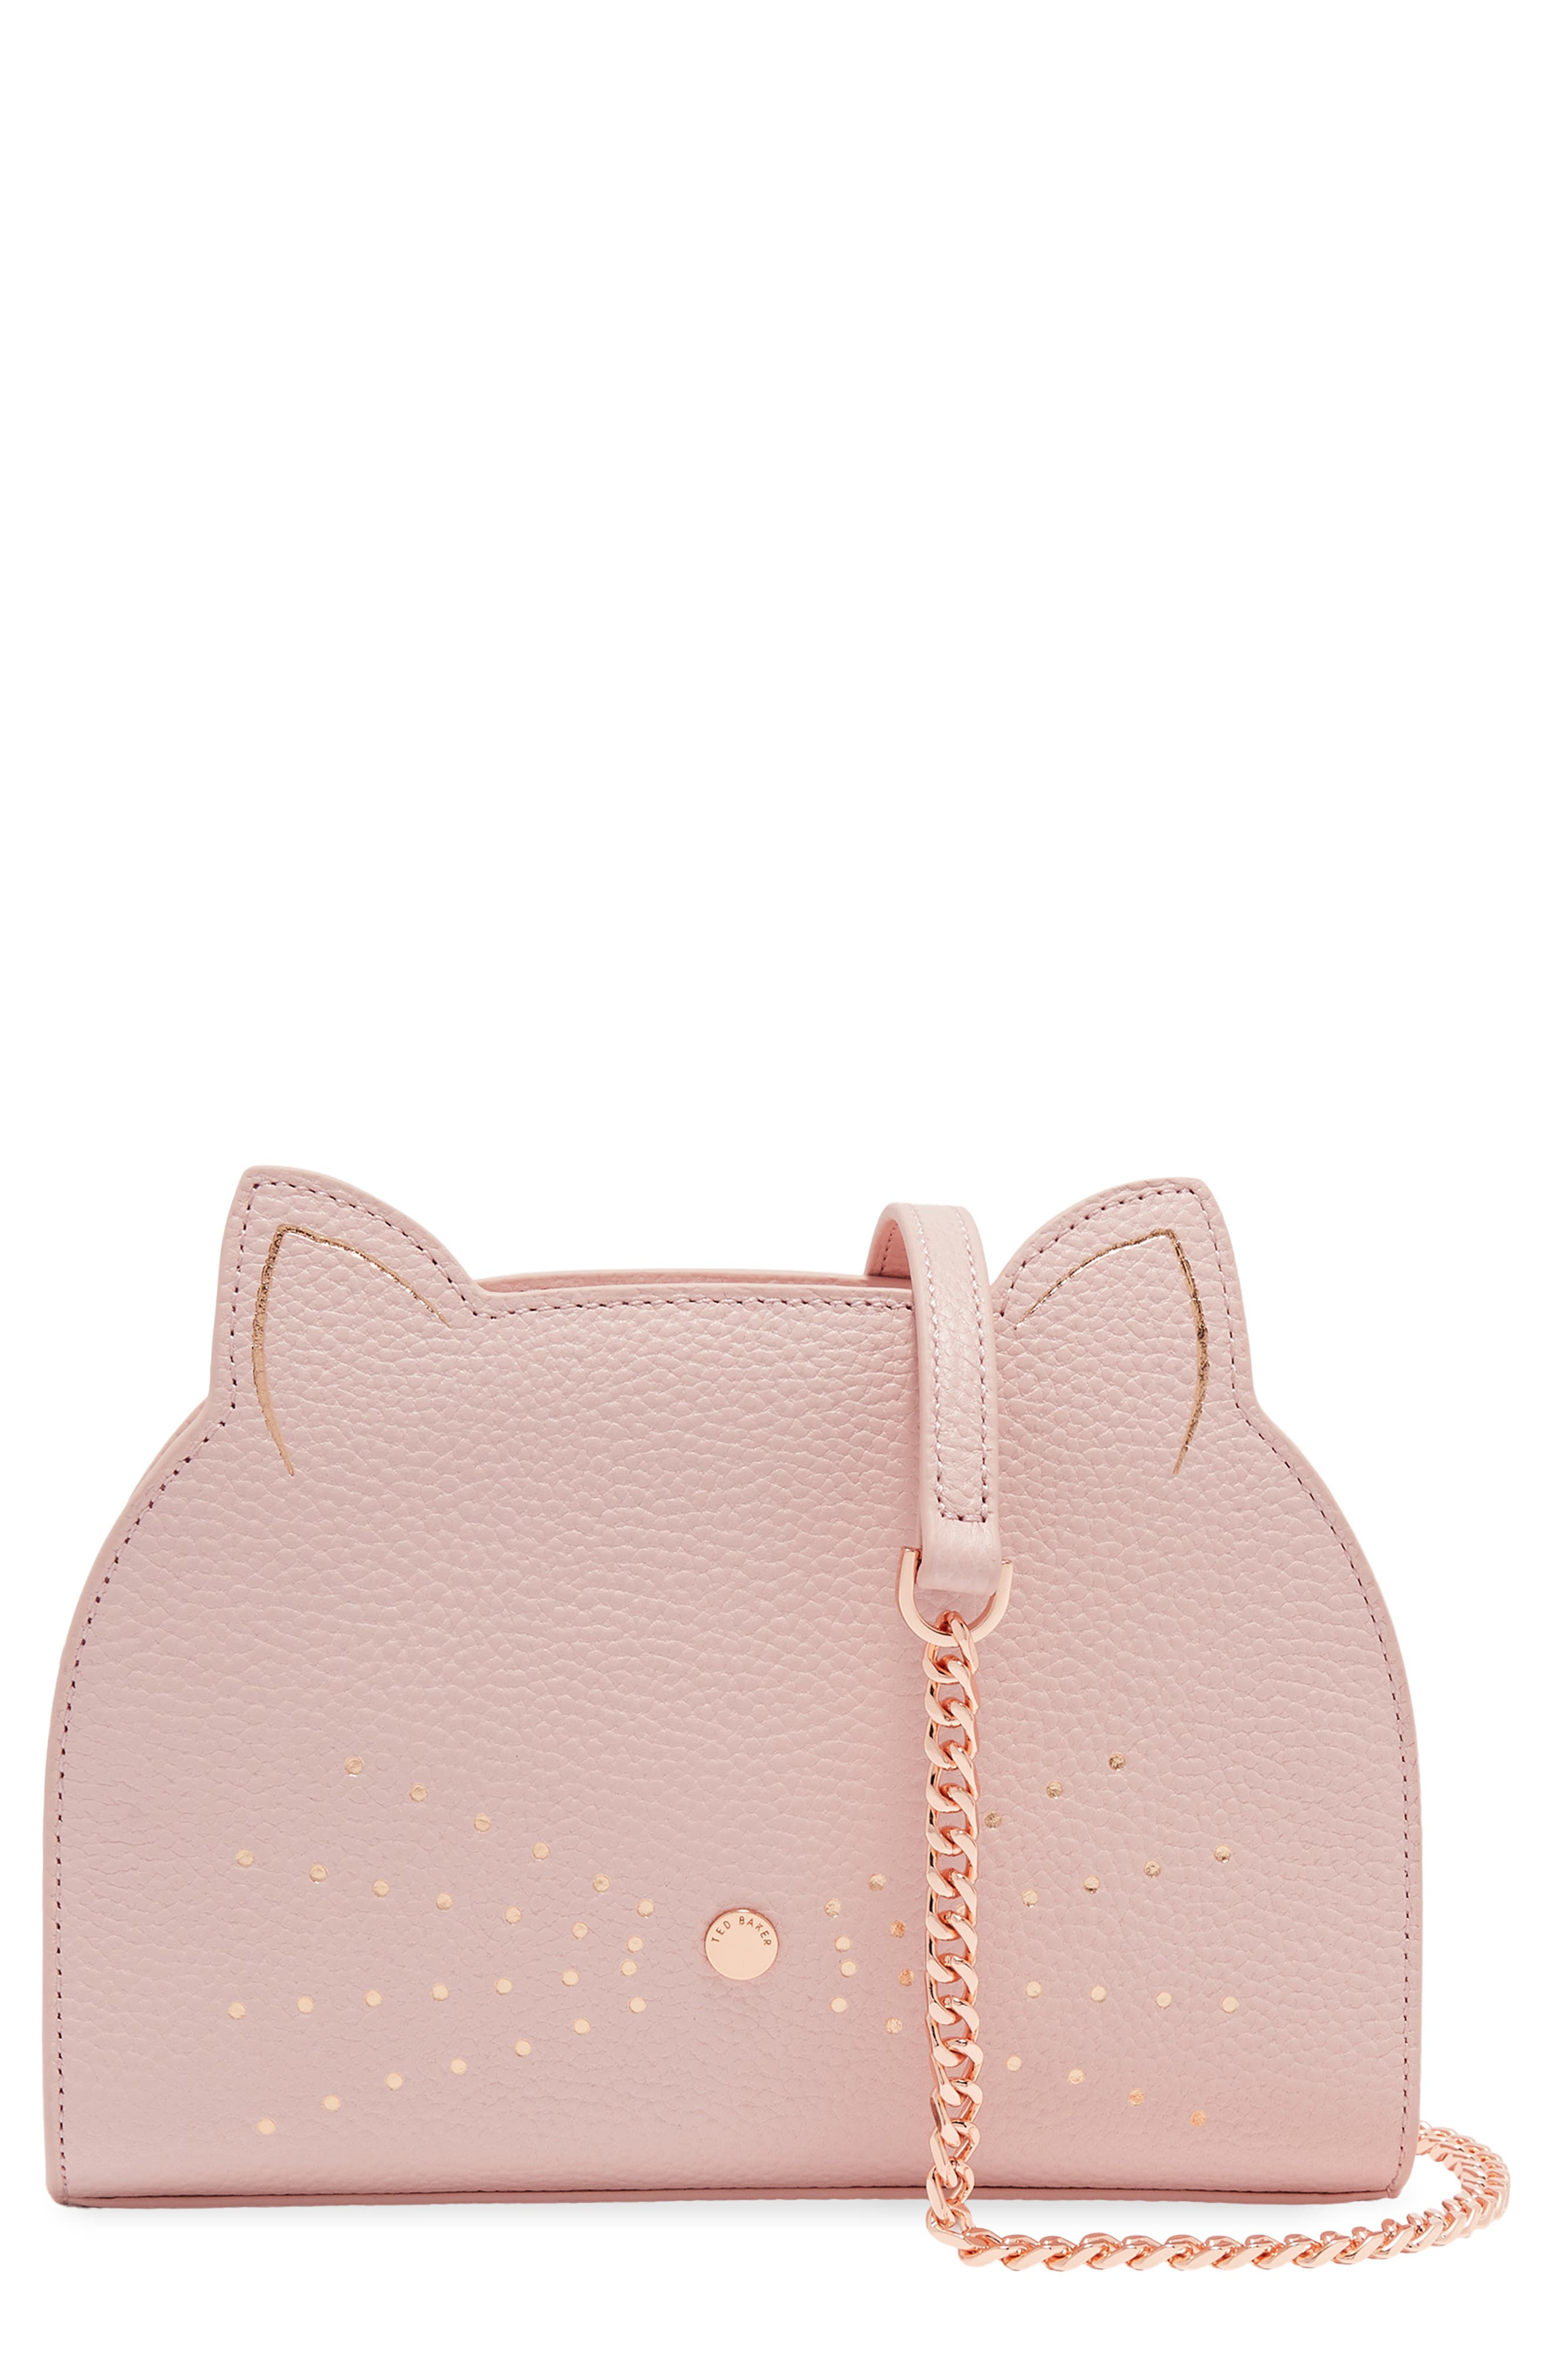 TED BAKER Kirstie Cat Leather Crossbody Bag - Pink in Light Pink